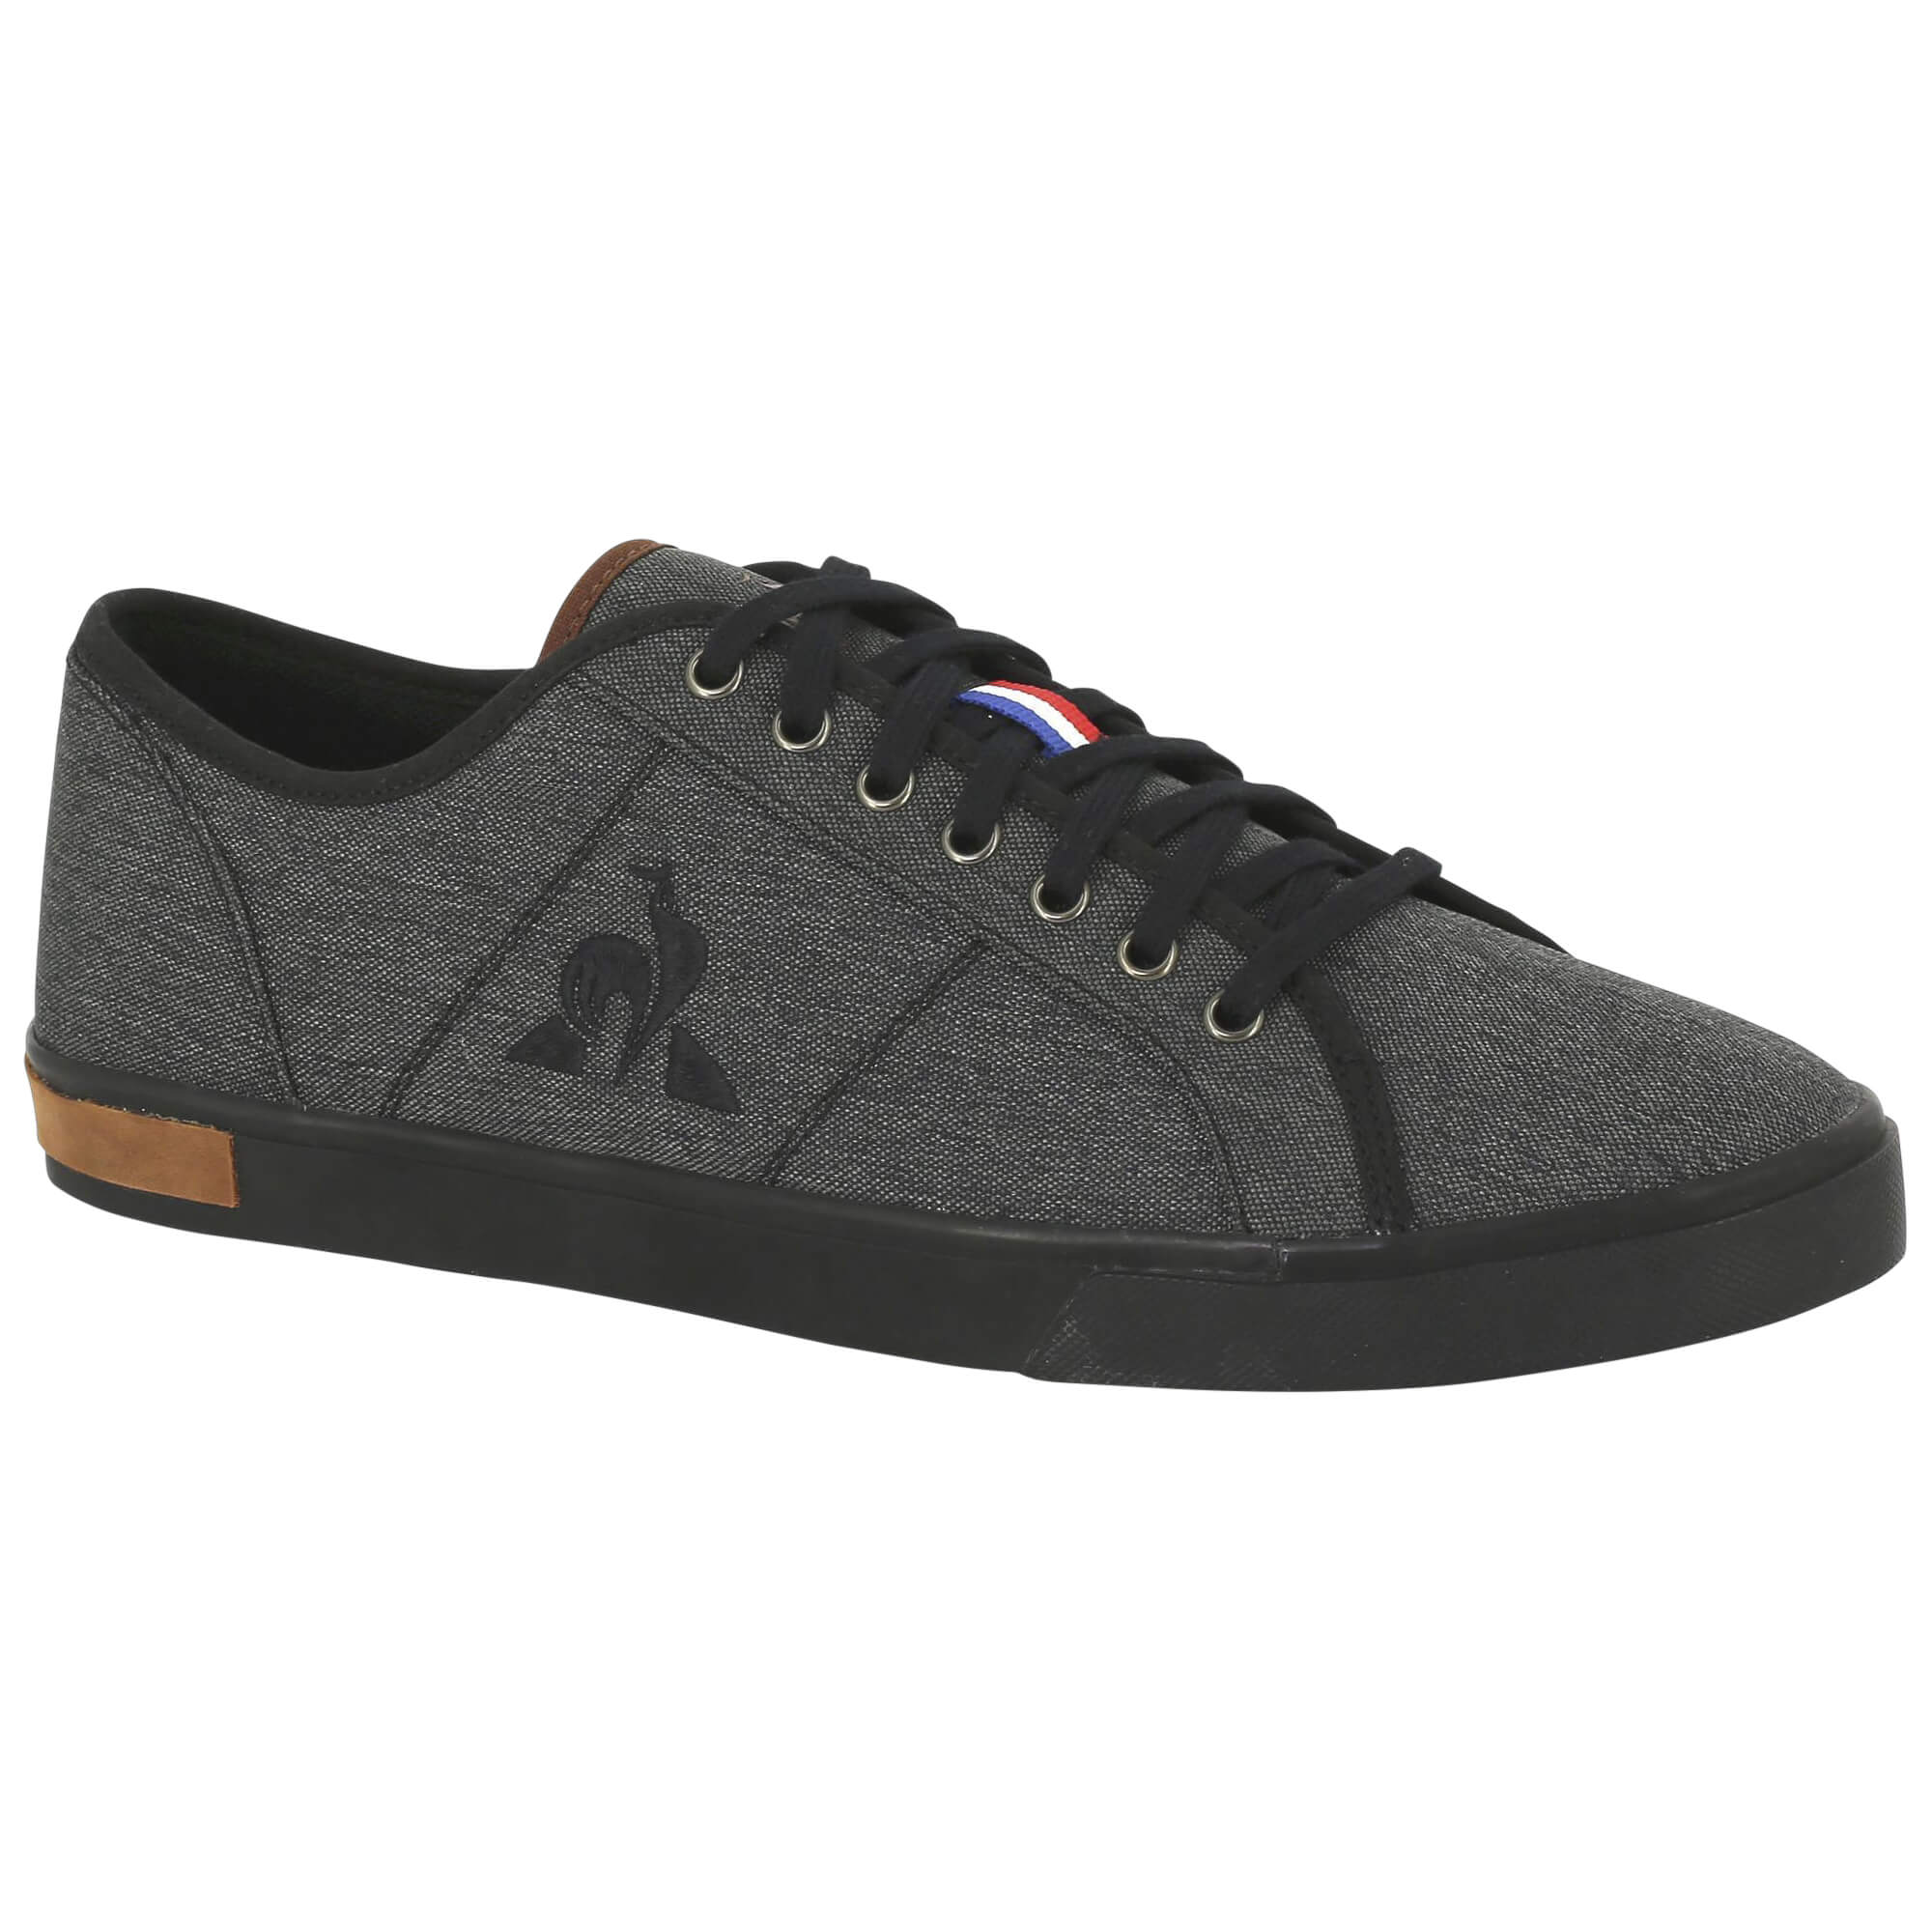 Verdon Winter Denim Le coq sportif Oferta